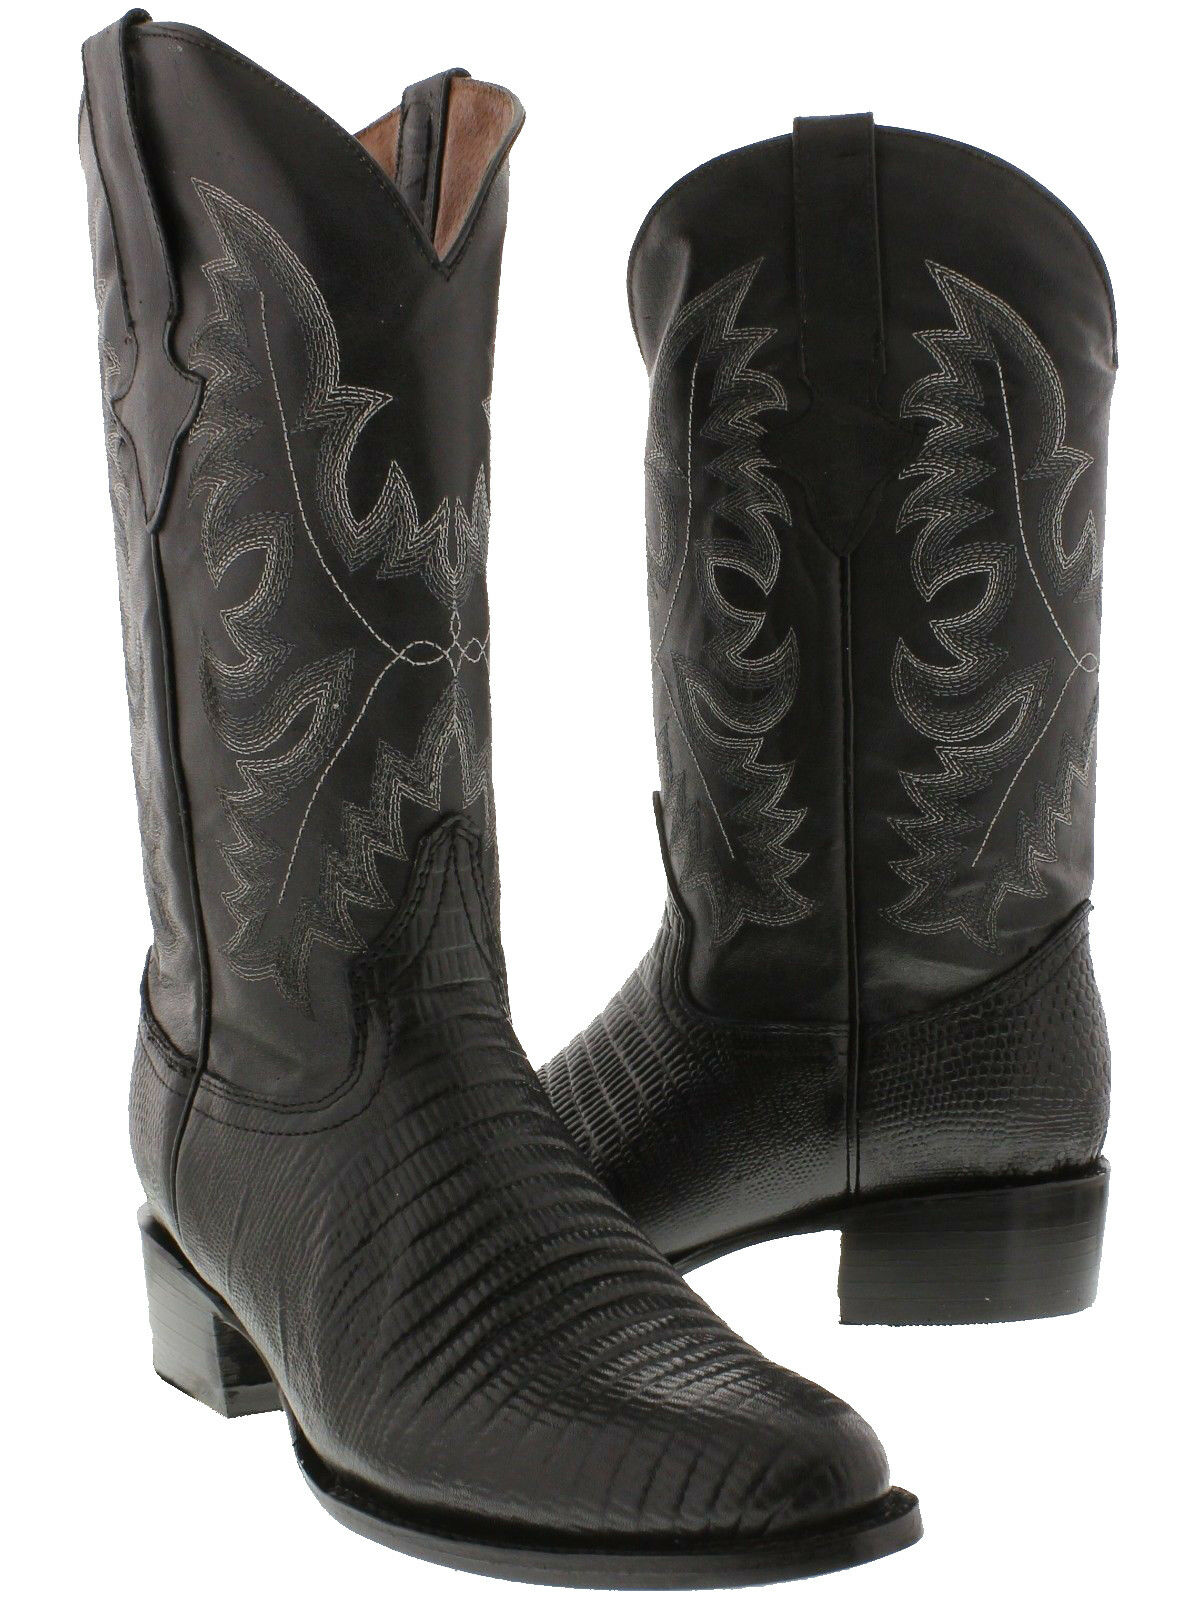 Mens Black Lizard Print Western Wear Cowboy Leather Exotic Riding Round Boots